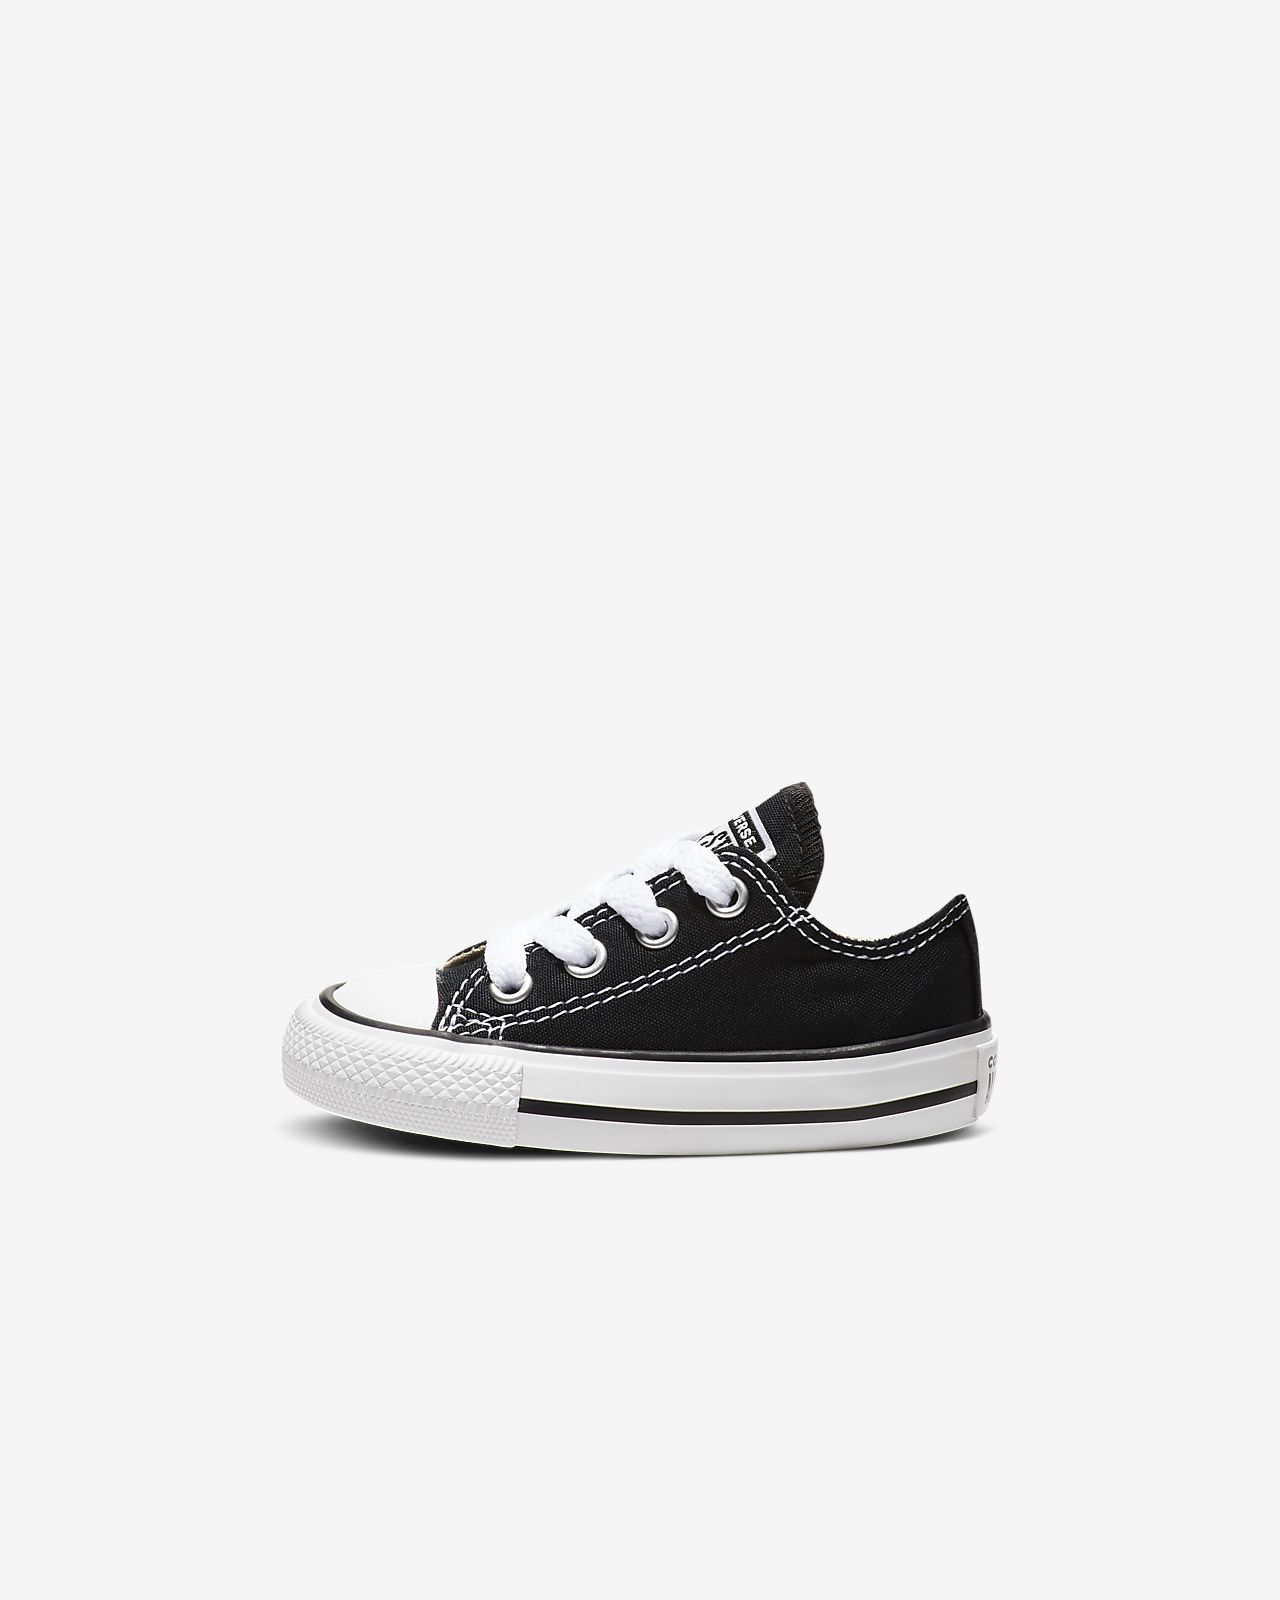 69c49d81c845 ... Converse Chuck Taylor All Star Low Top Infant Toddler Shoe. Black